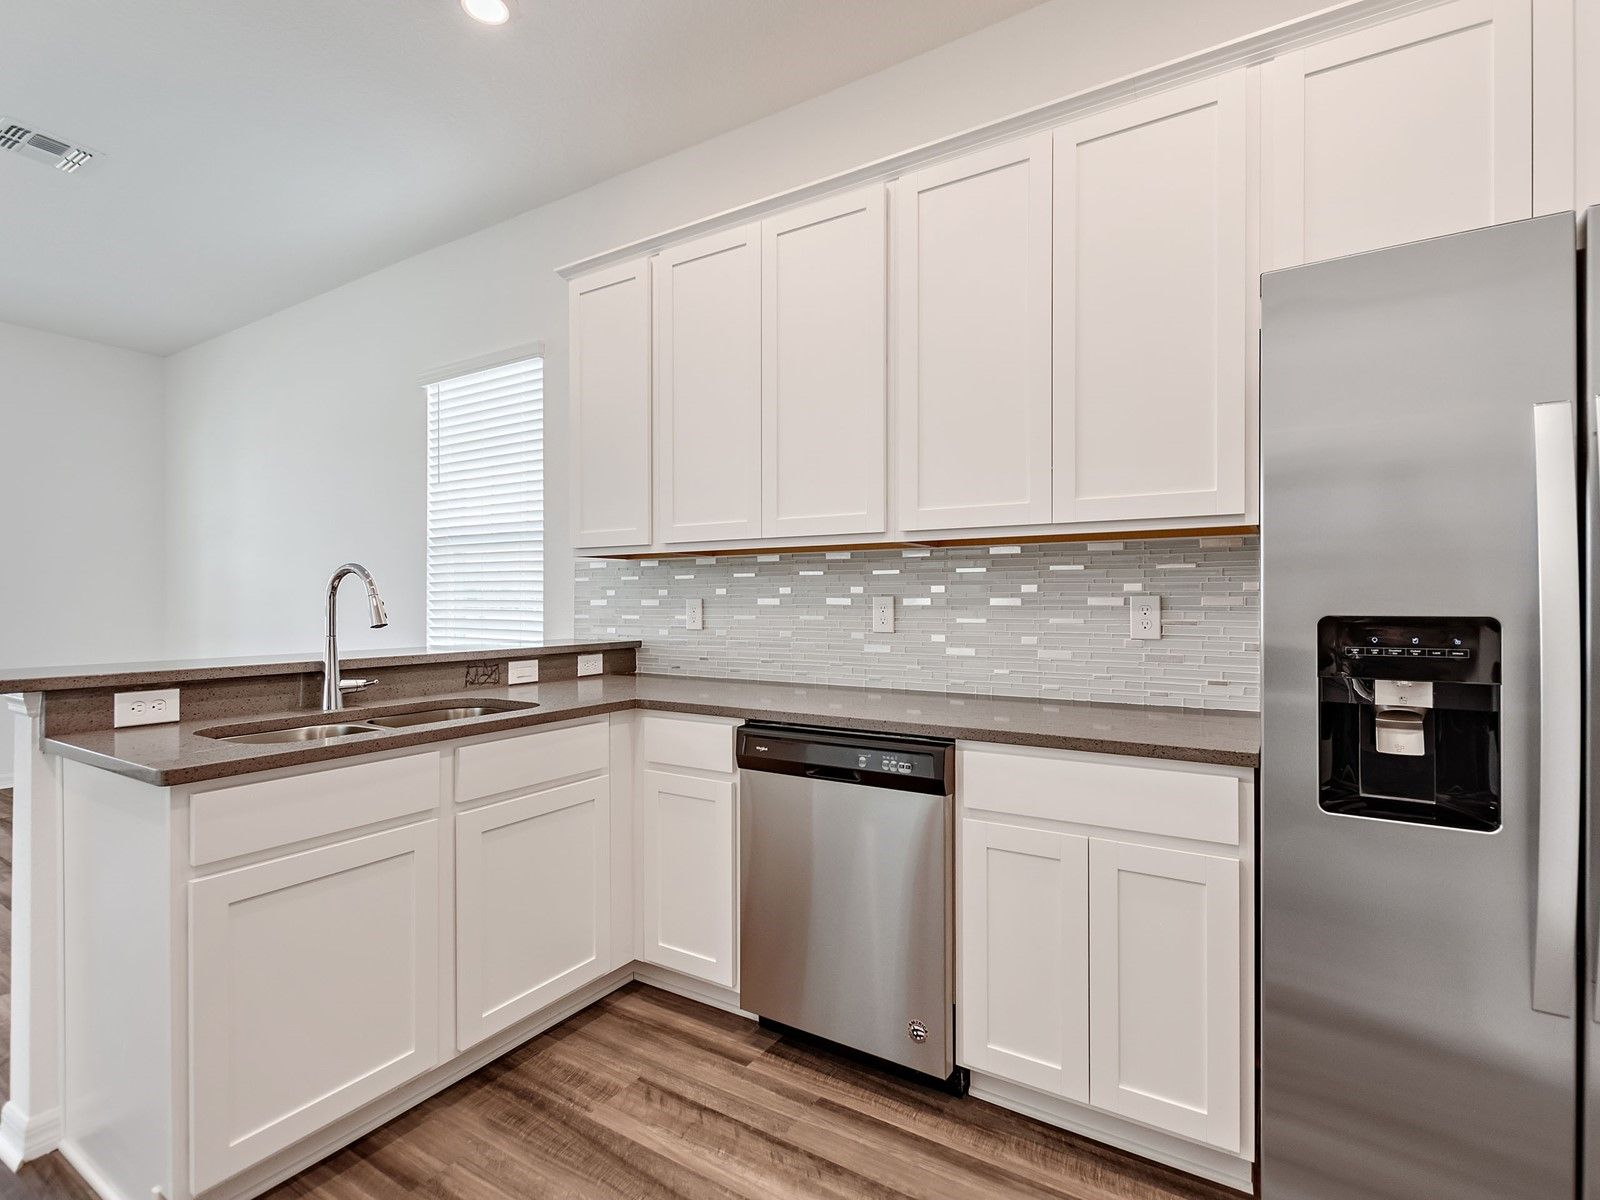 Kitchen featured in the Tennyson By Meritage Homes in Daytona Beach, FL